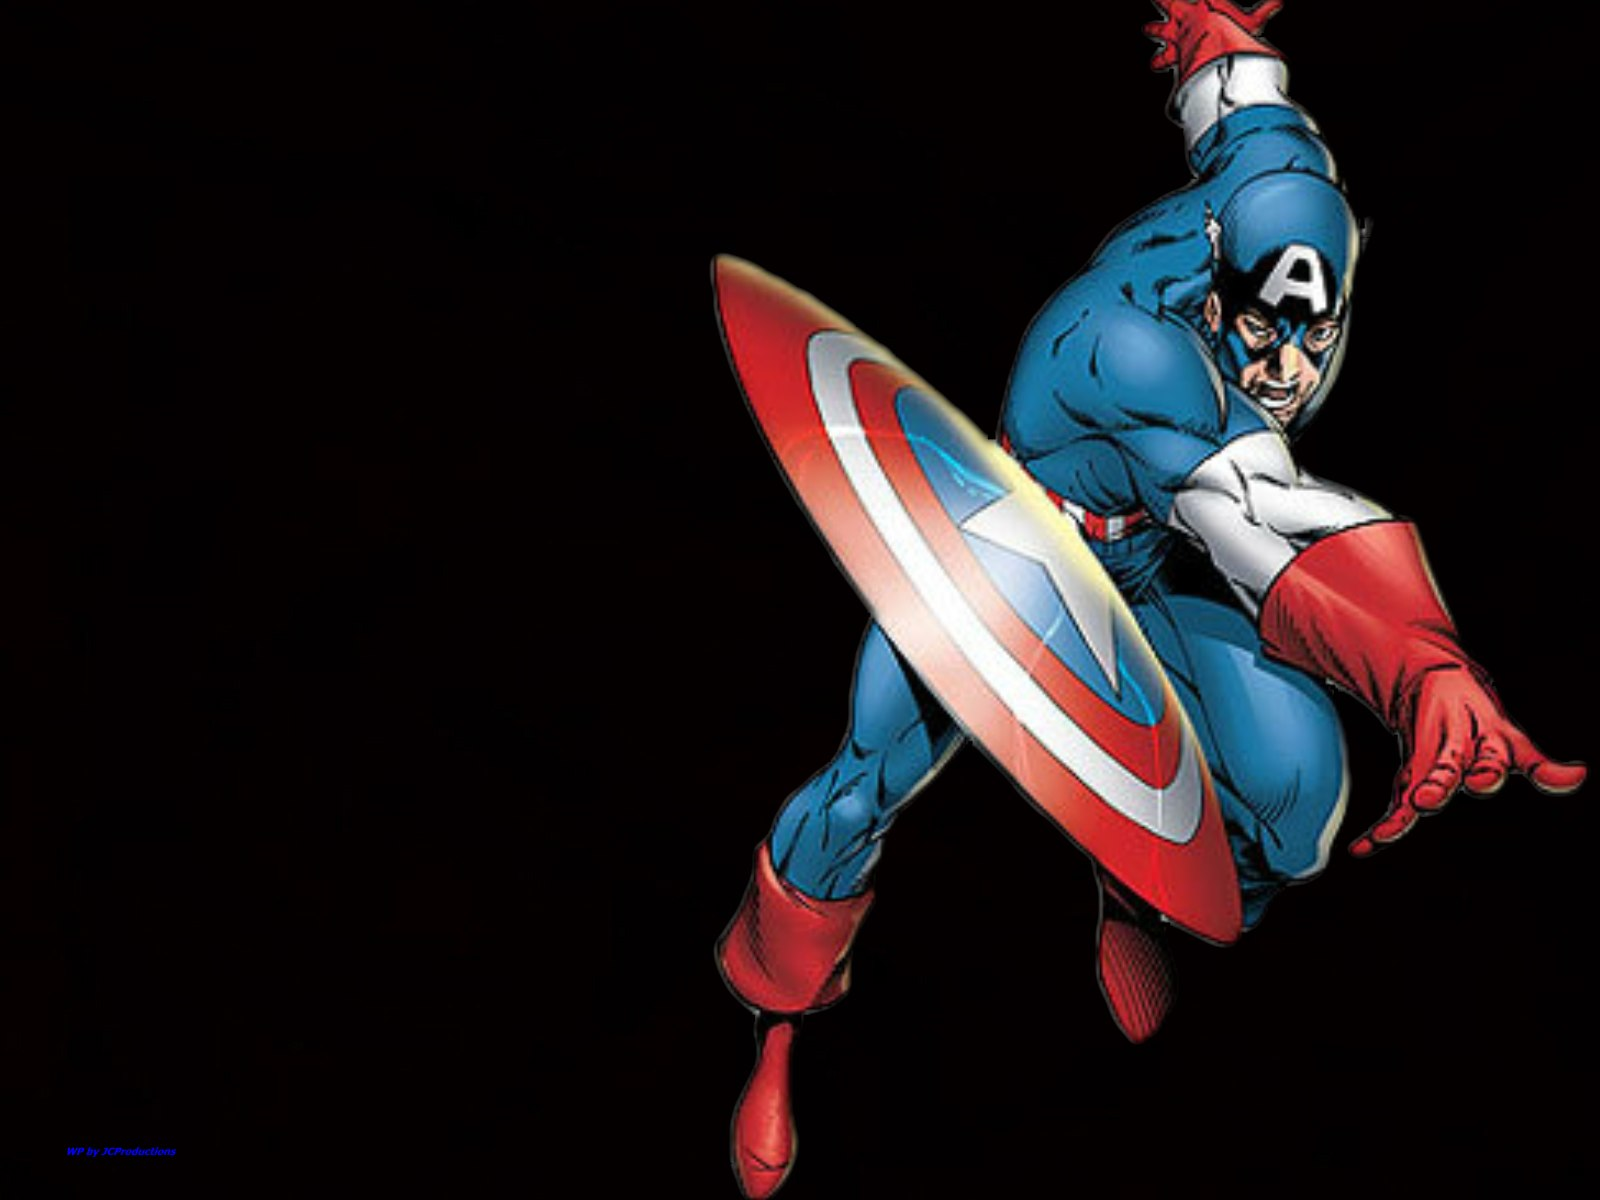 Captain America shield Wallpaper Hight Quality Idiot Dollar 1600x1200